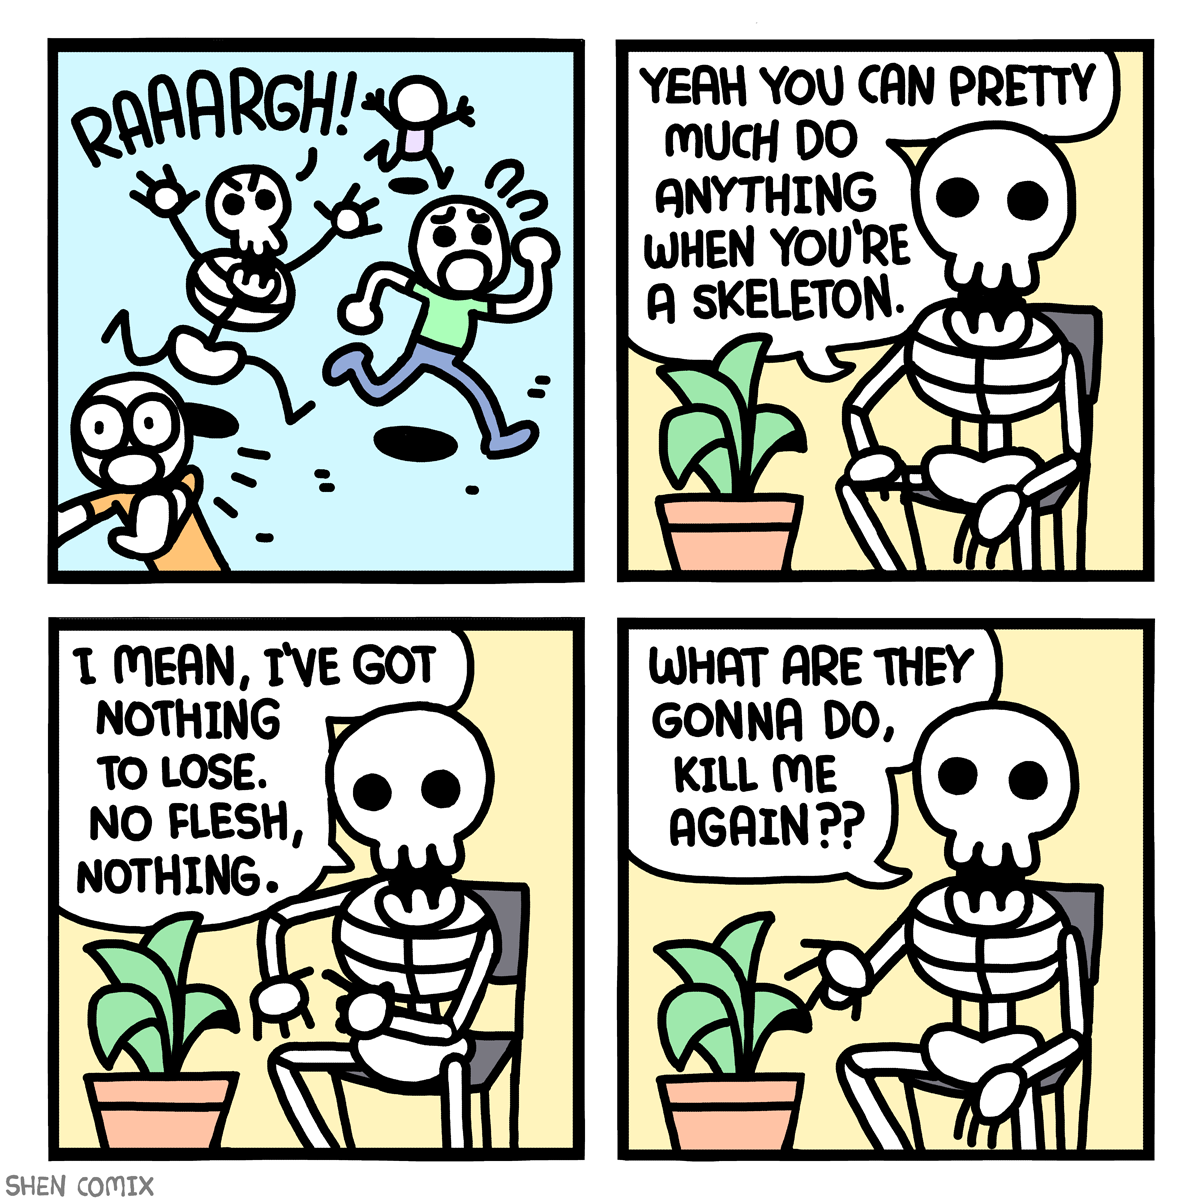 My Life as a Skeleton